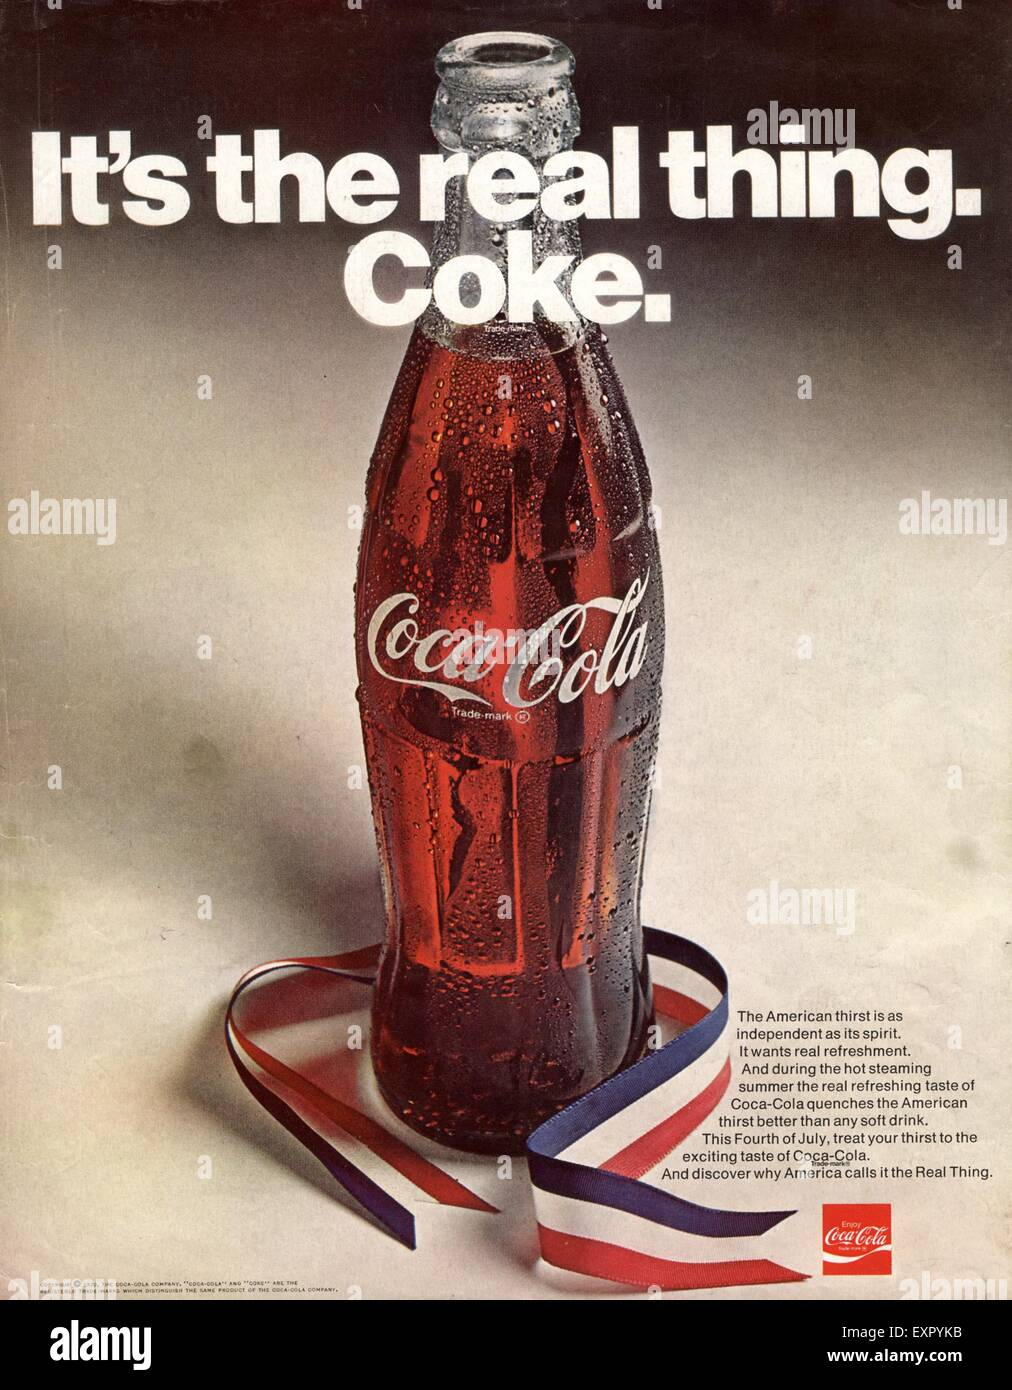 1970s USA Coca-Cola Magazine Advert Stock Photo: 85327183